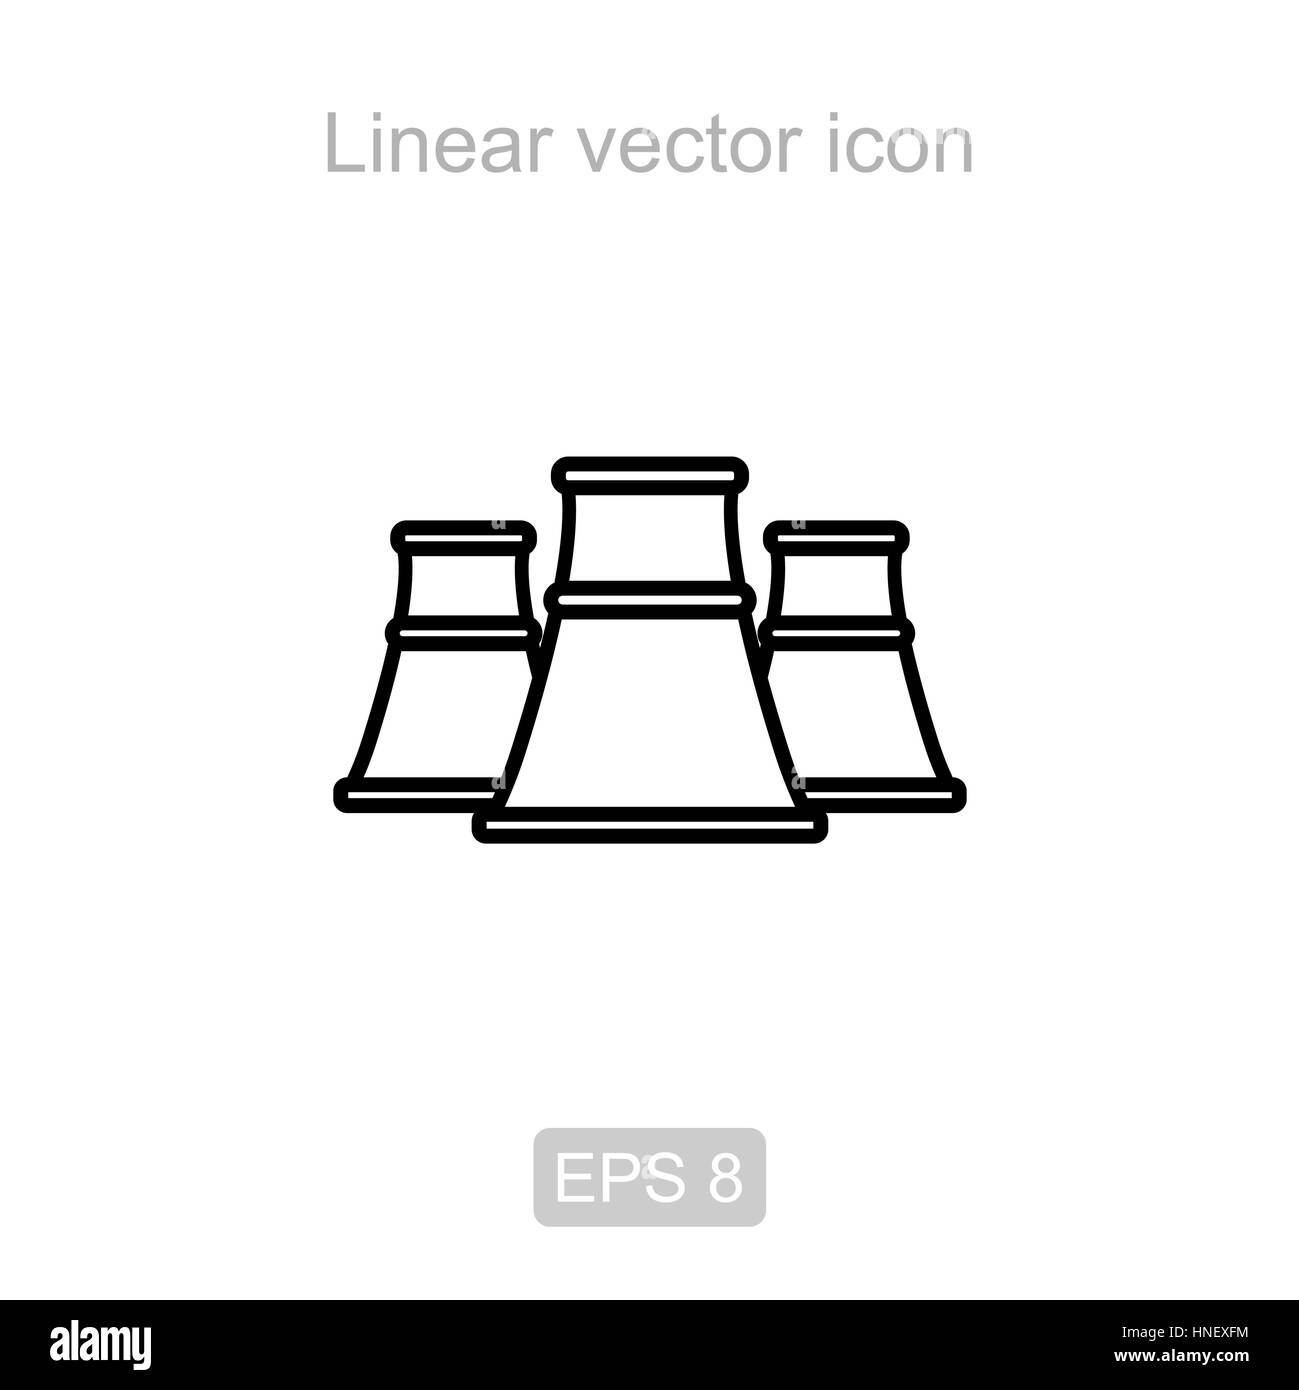 Nuclear power station. Linear vector icon. - Stock Image